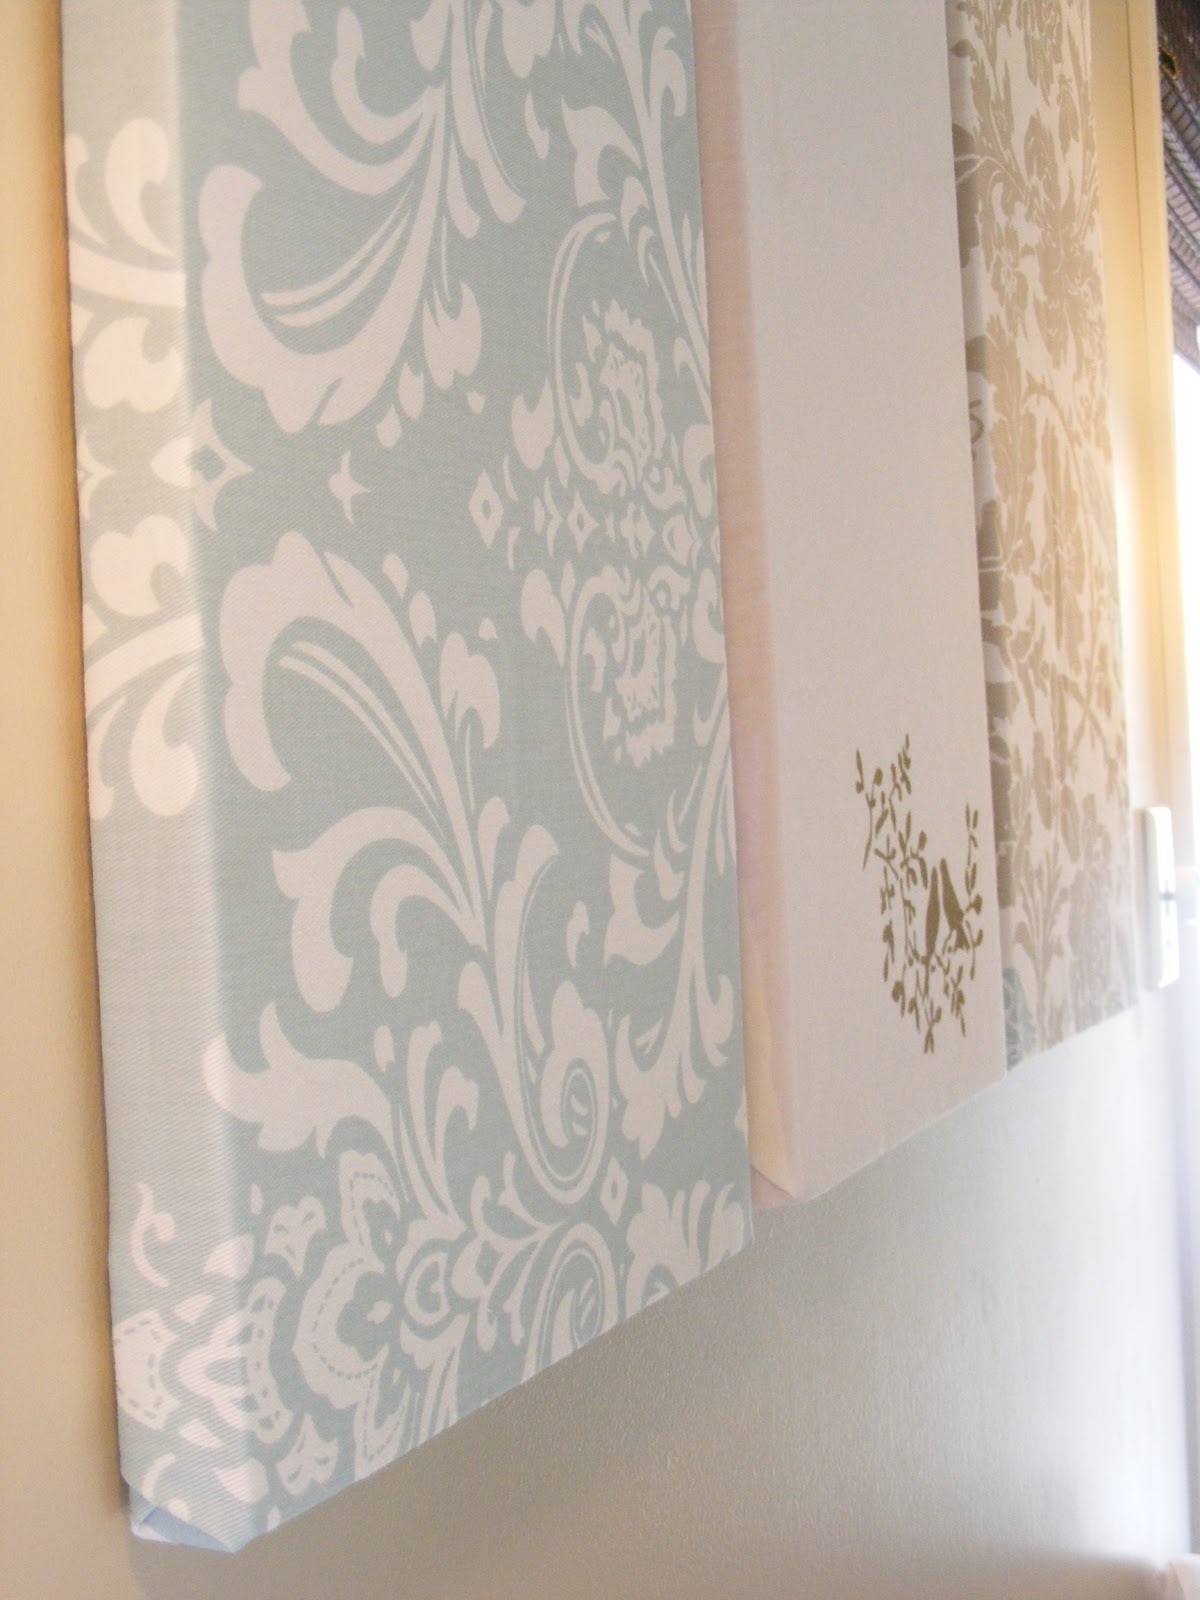 The Complete Guide To Imperfect Homemaking: Simple, Thrifty Diy Art Regarding Recent Padded Fabric Wall Art (Gallery 12 of 15)